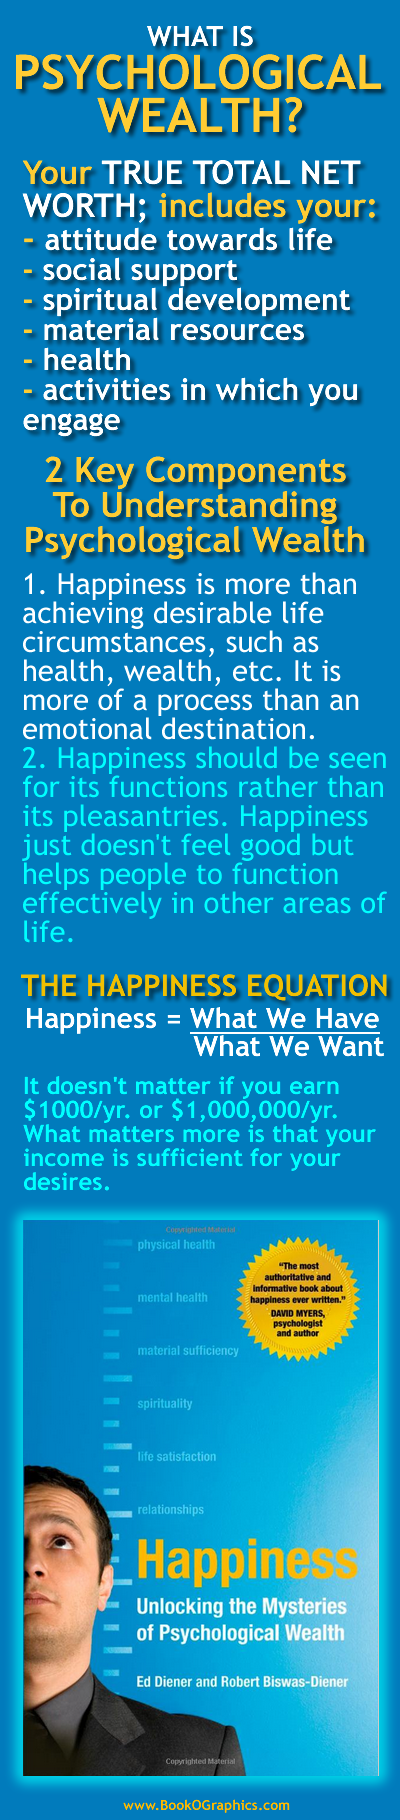 Happiness Bookographics